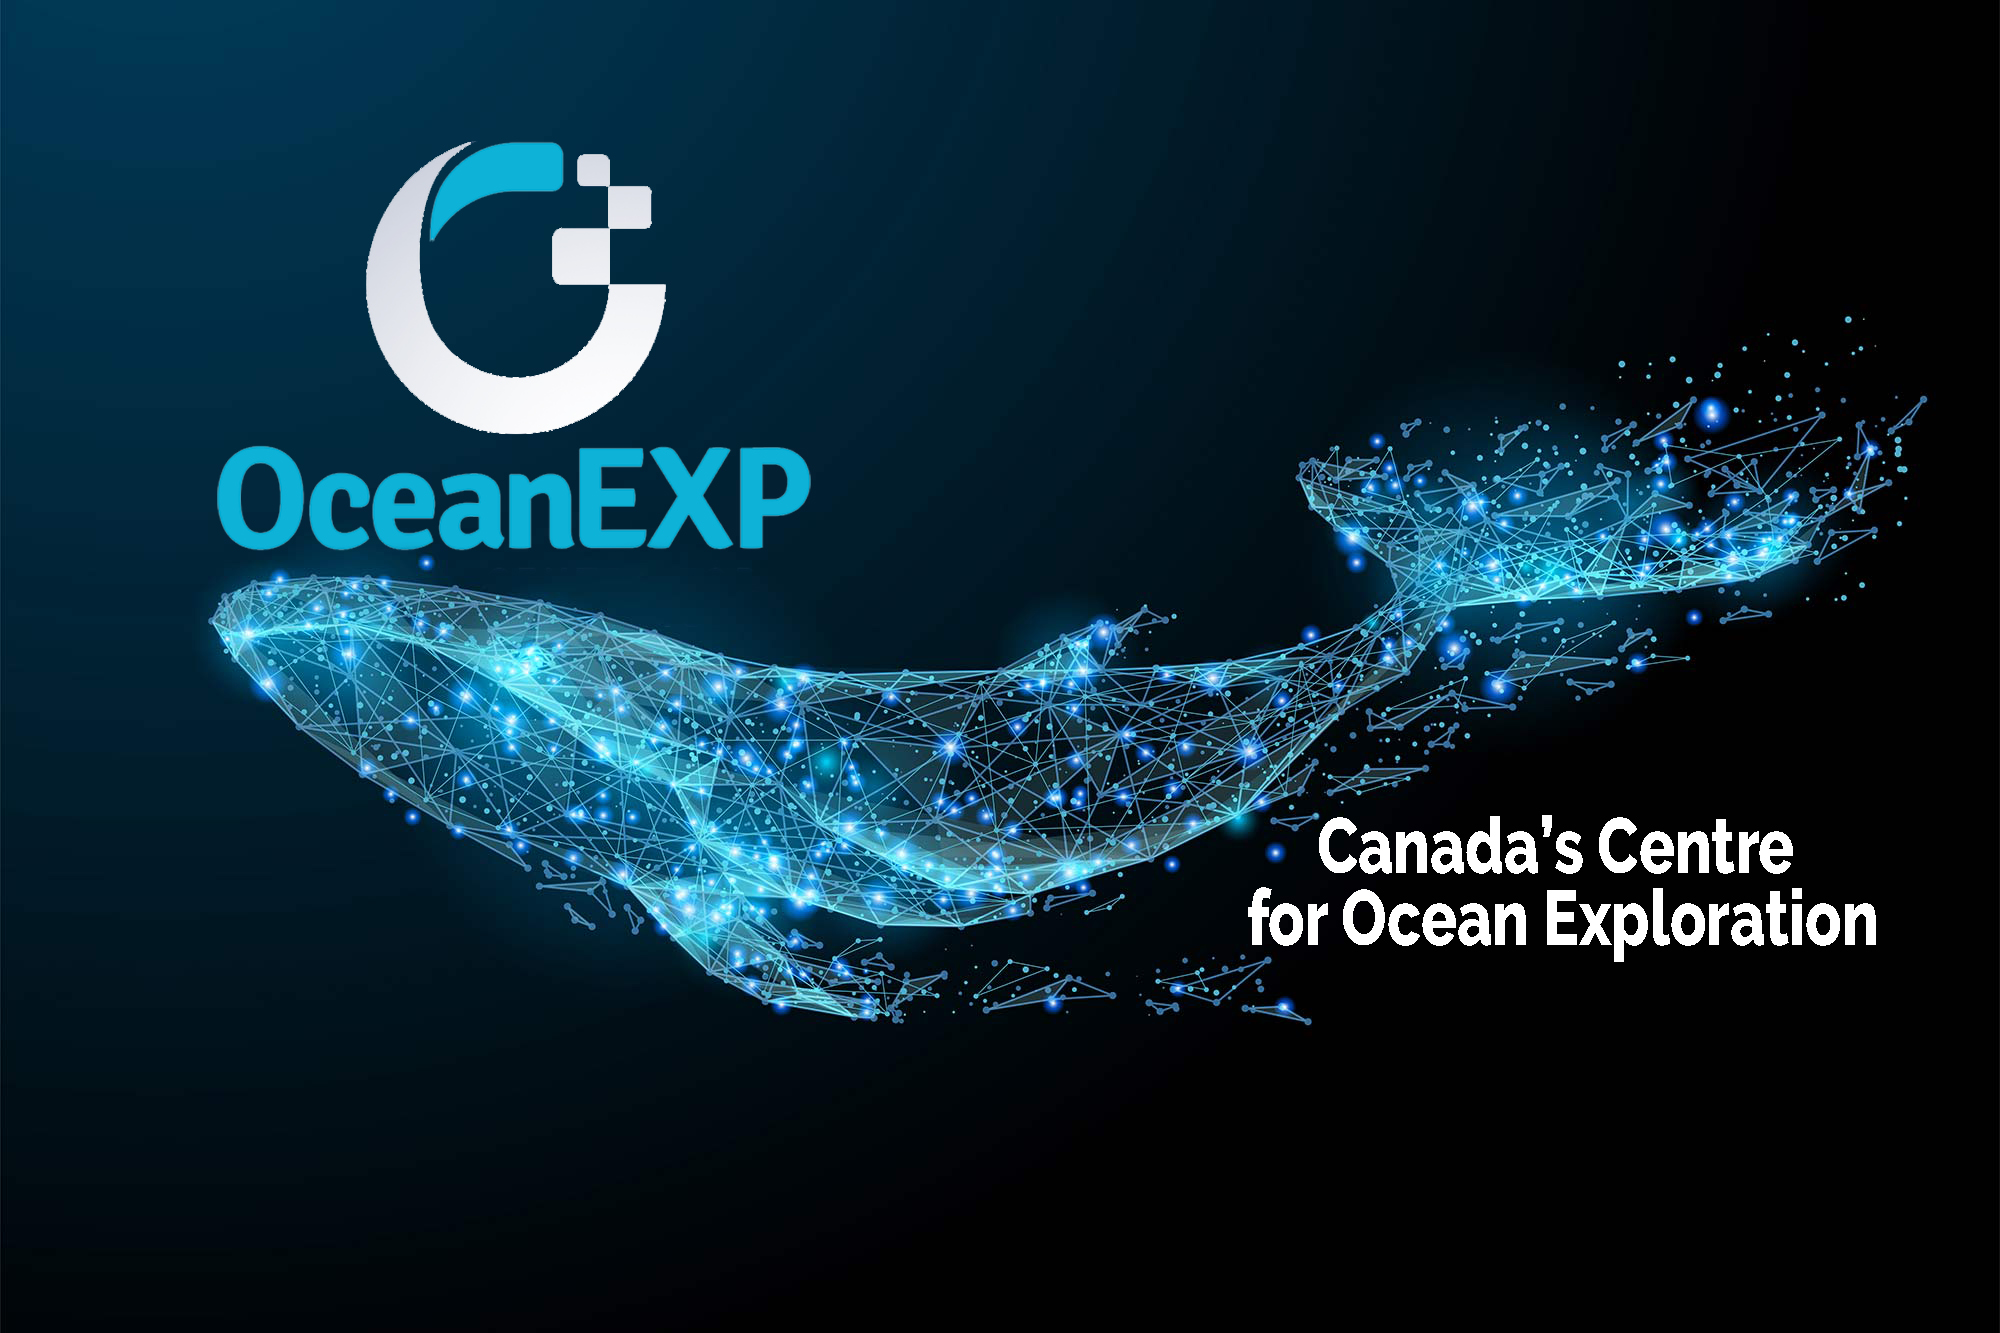 OceanEXP Whale Screen Saver.jpg